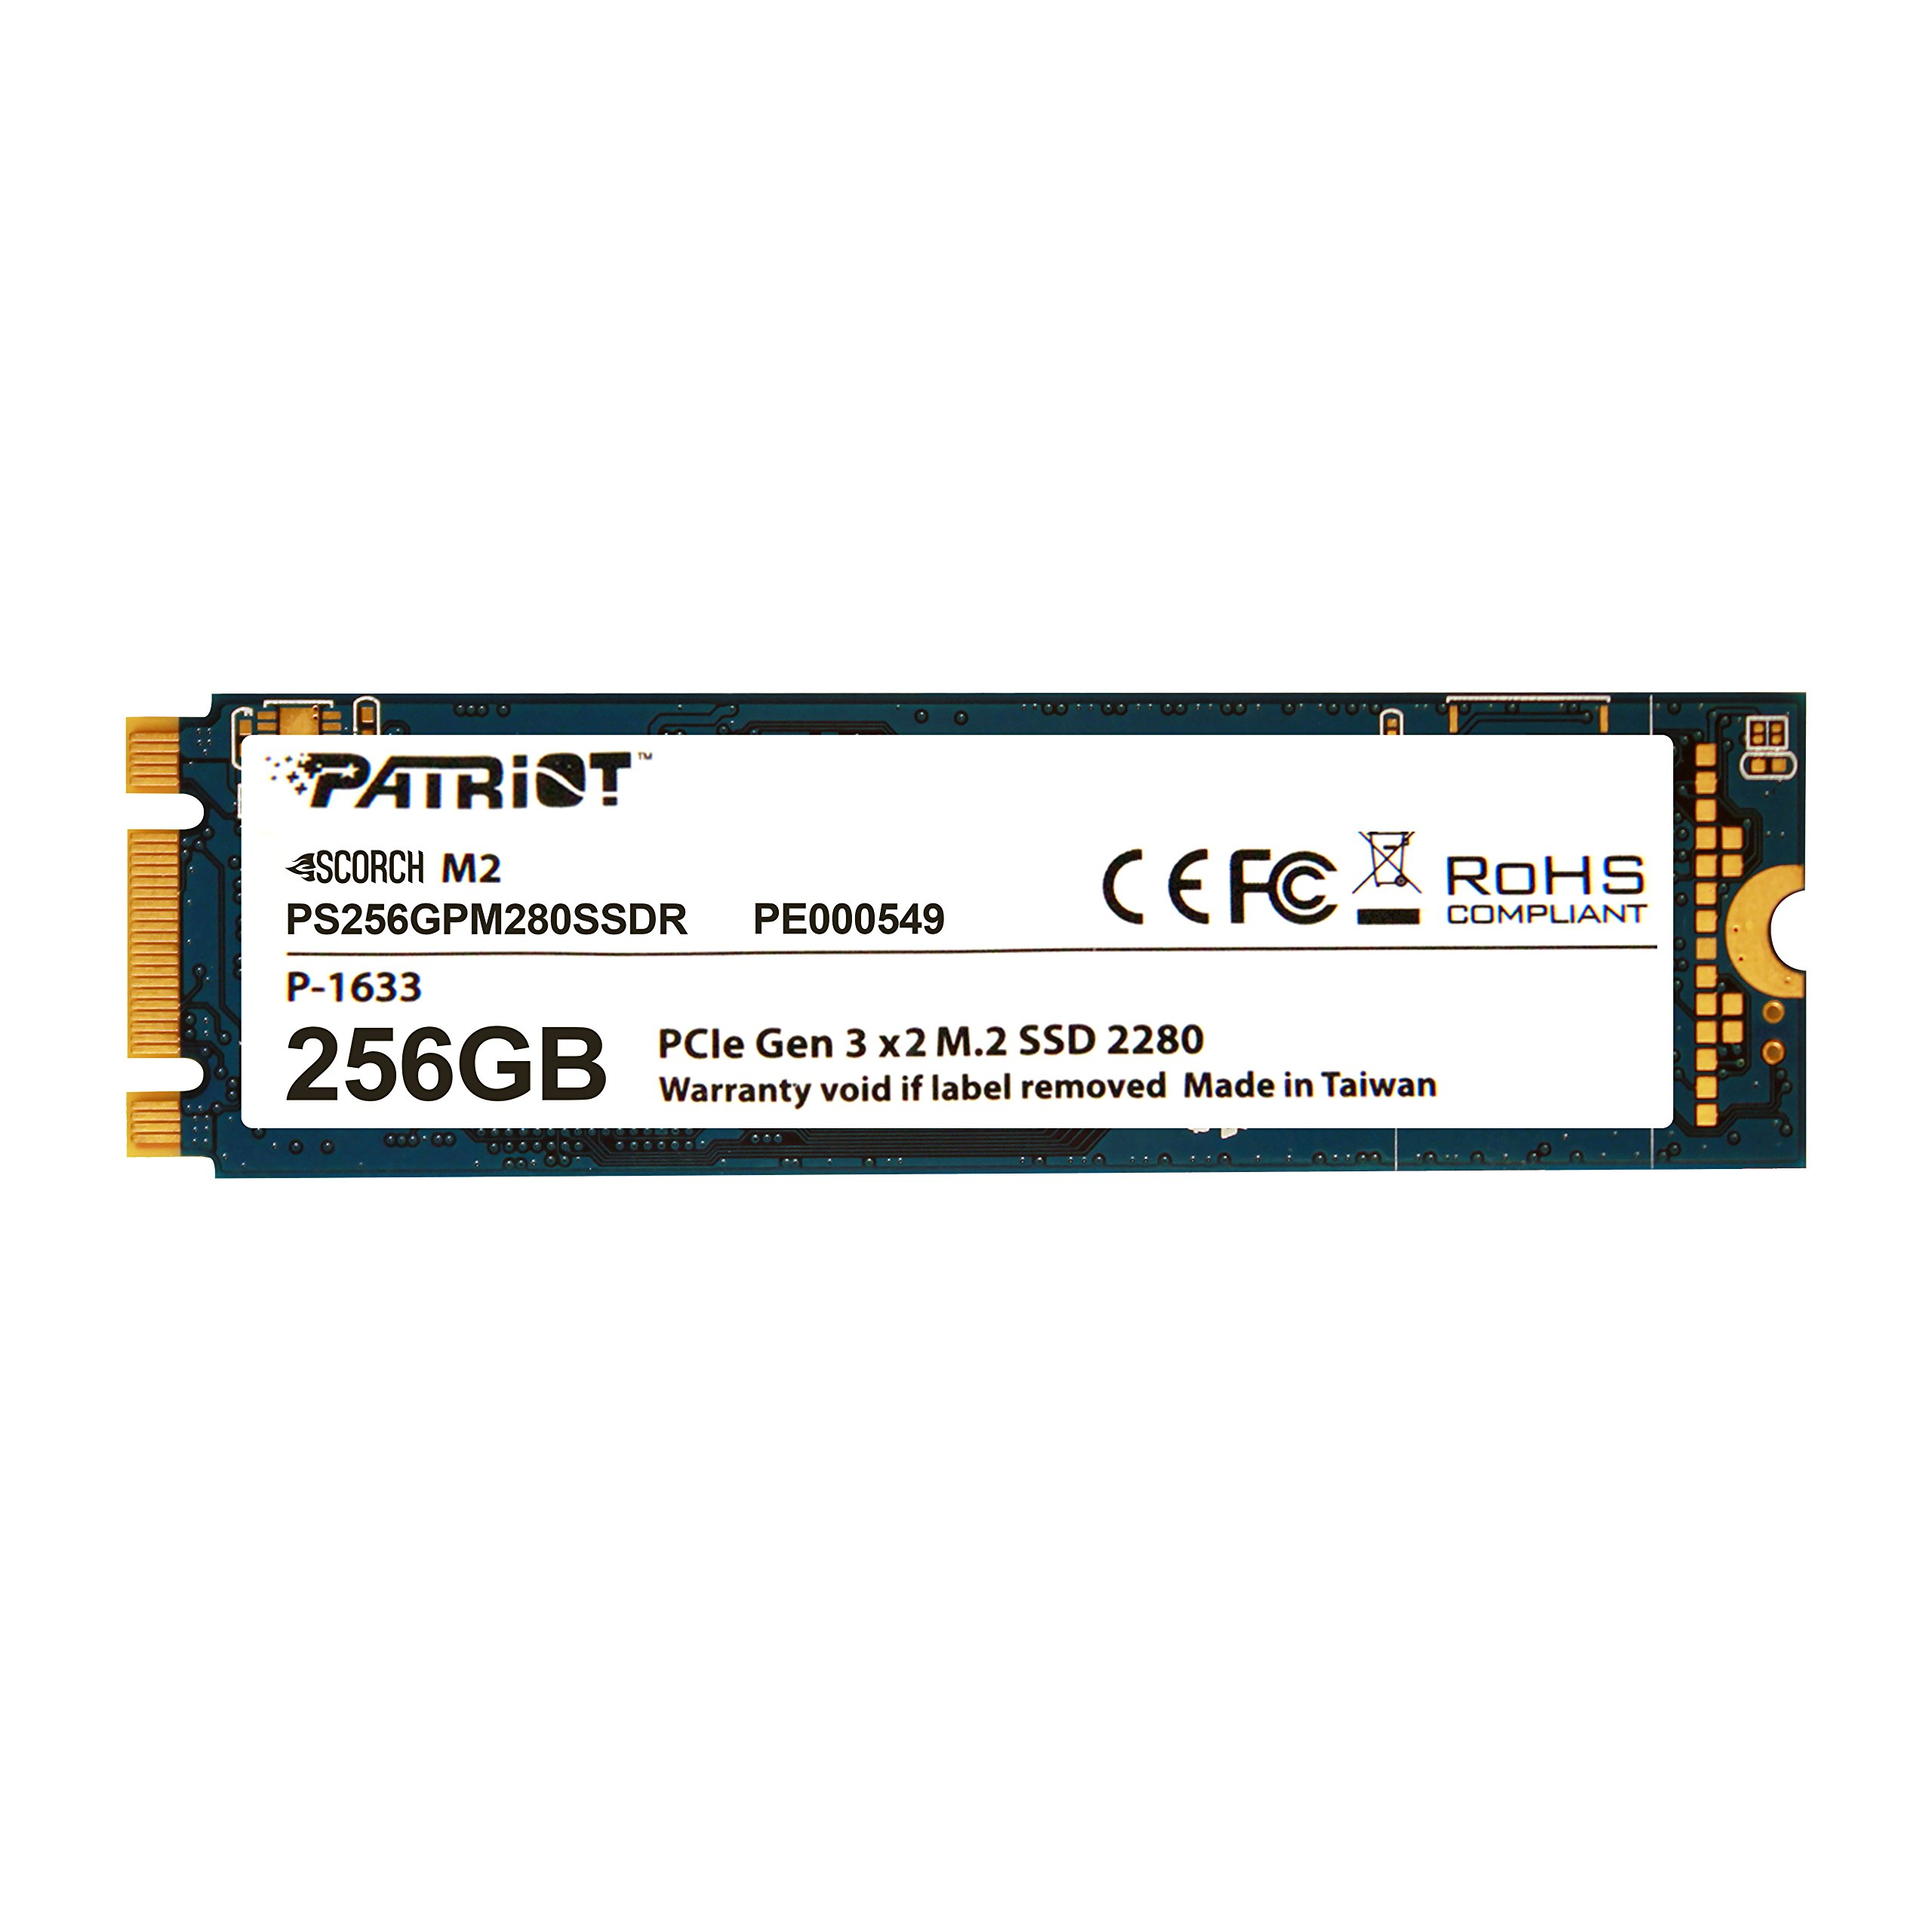 Patriot Scorch 256GB NVMe M.2 PCIe Solid State Drive Up to 1700MB/s Read Transfer Speeds